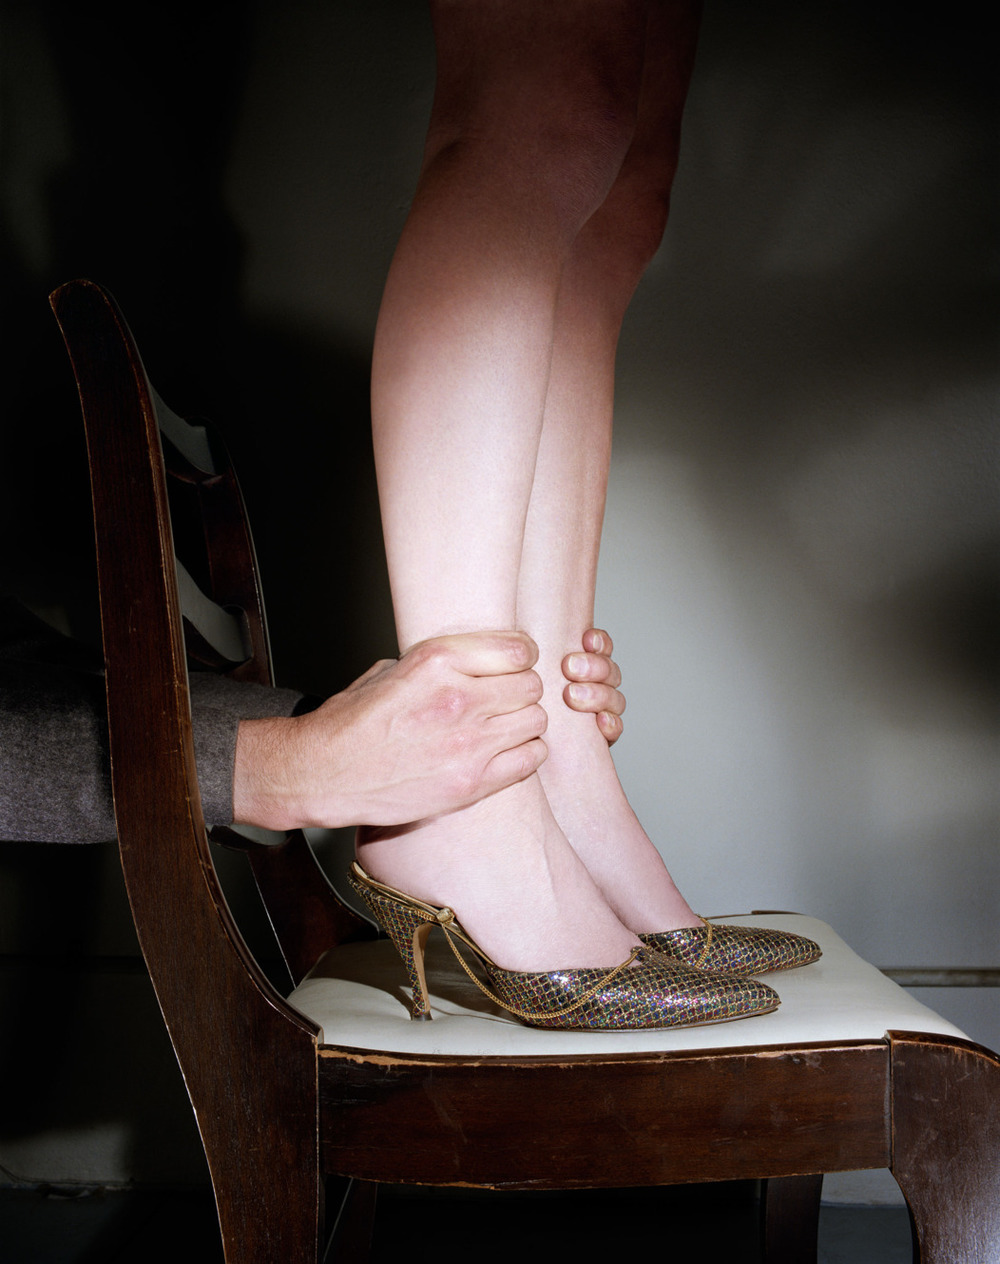 JO ANN CALLIS: 'OTHER ROOMS' Hands On Ankles, 1976–77